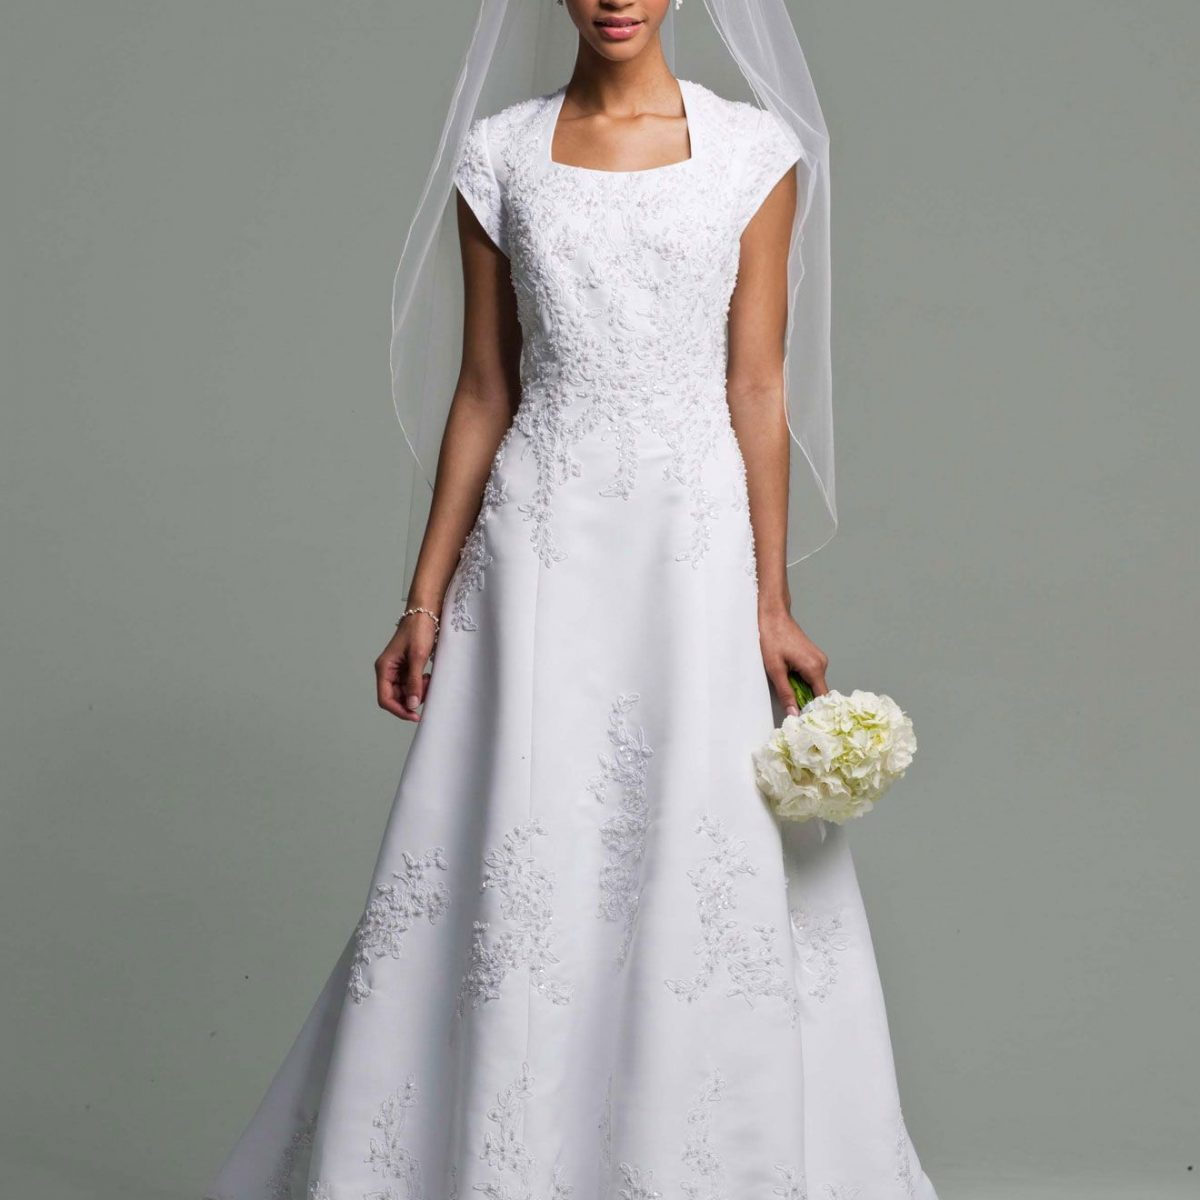 Lace wedding dress under 100 dollars with long veilcherry for Long wedding dresses under 100